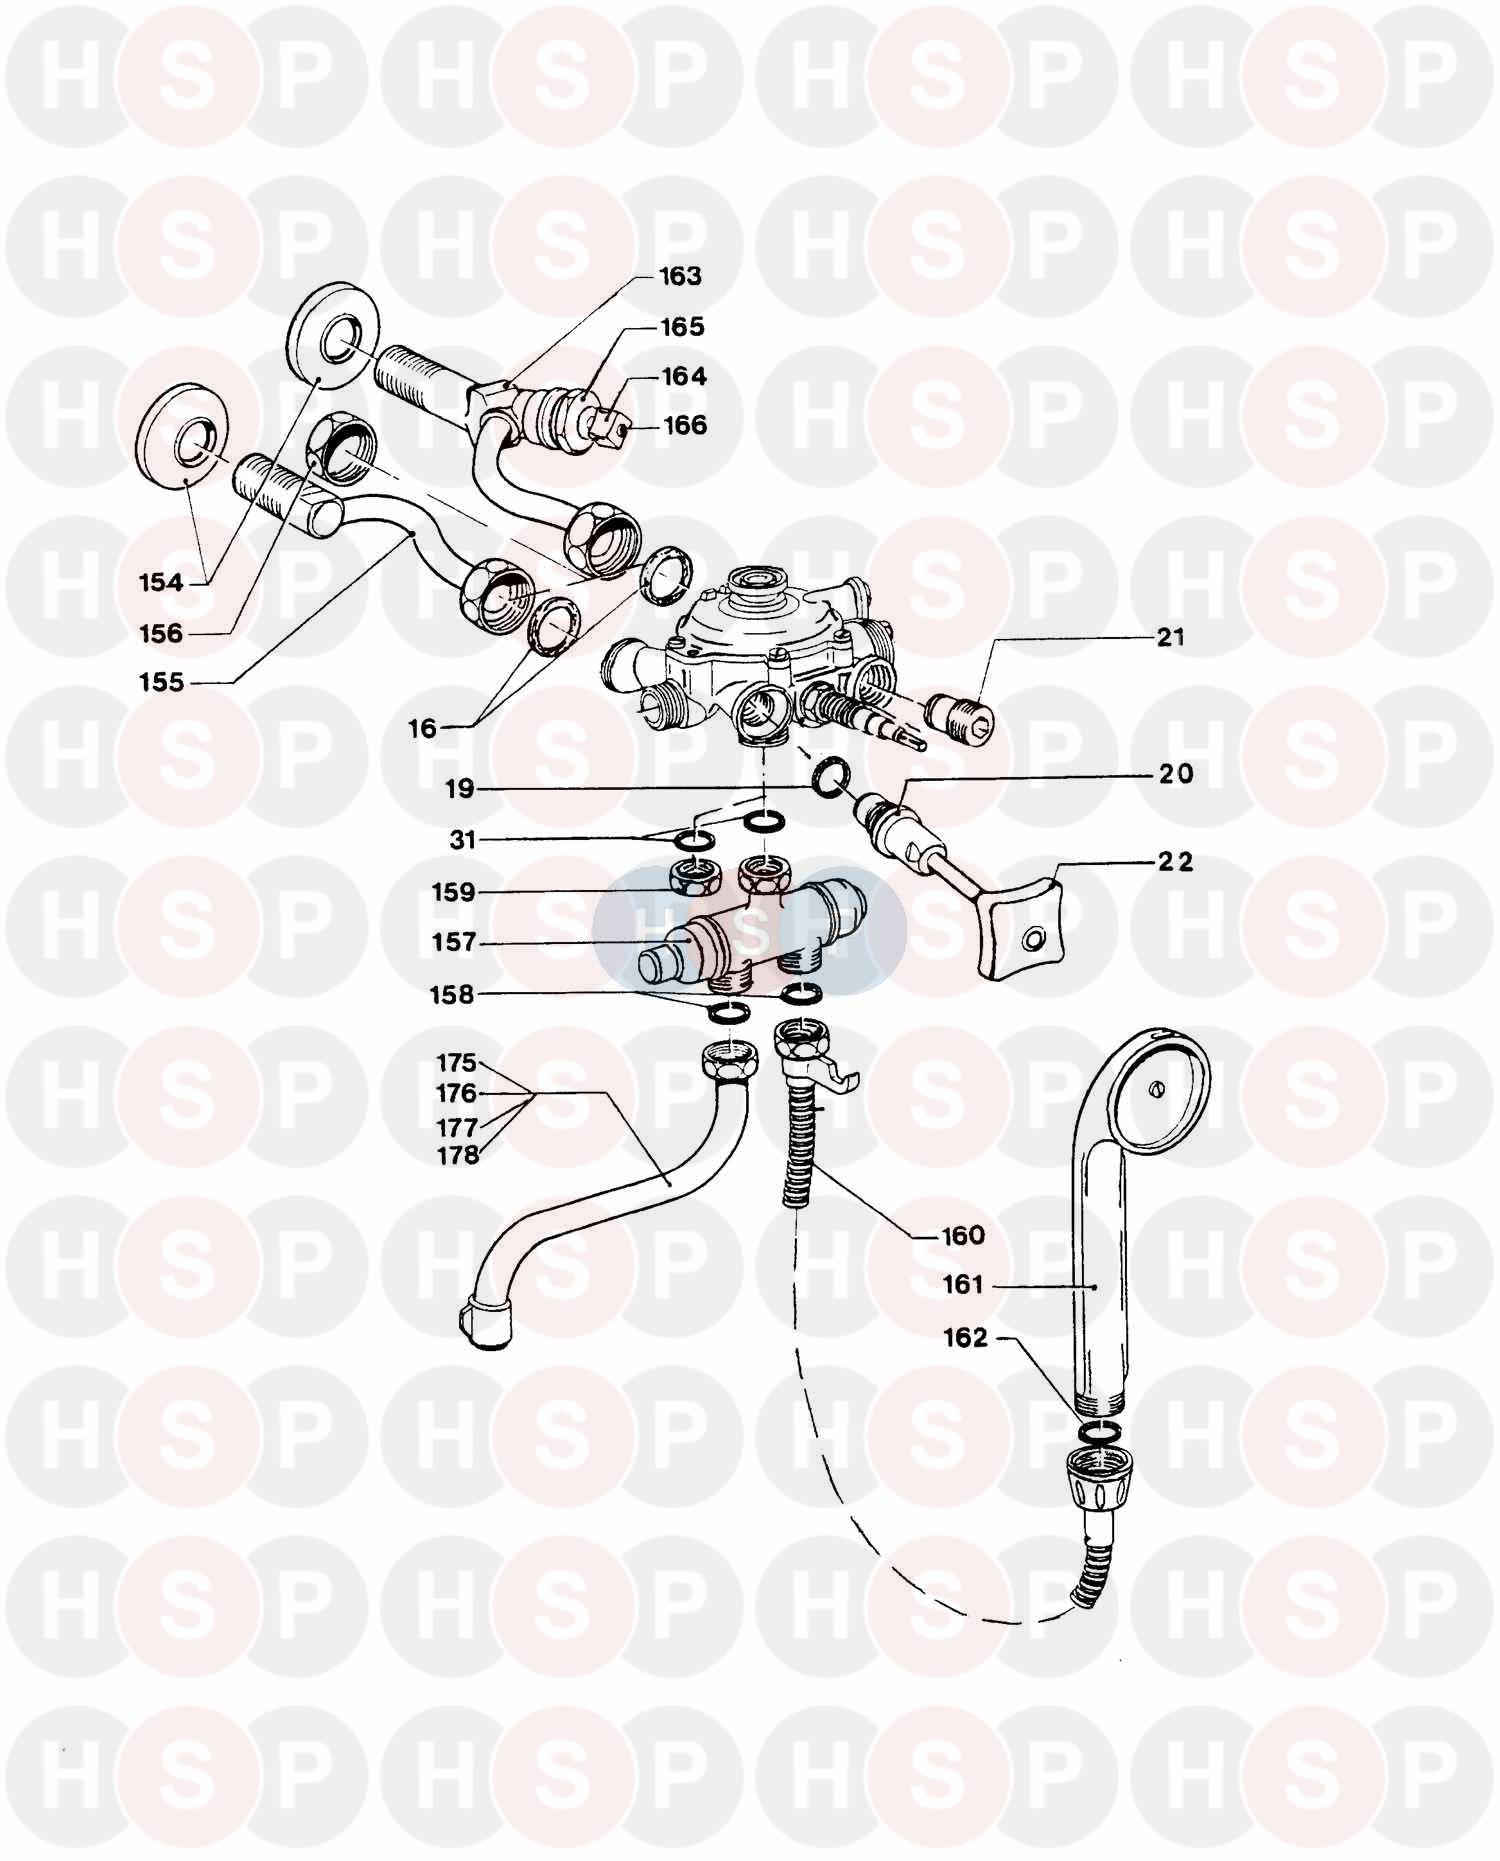 Vaillant MAG-SINE 250/8 ARTZH HP (ACCESSORIES) Diagram